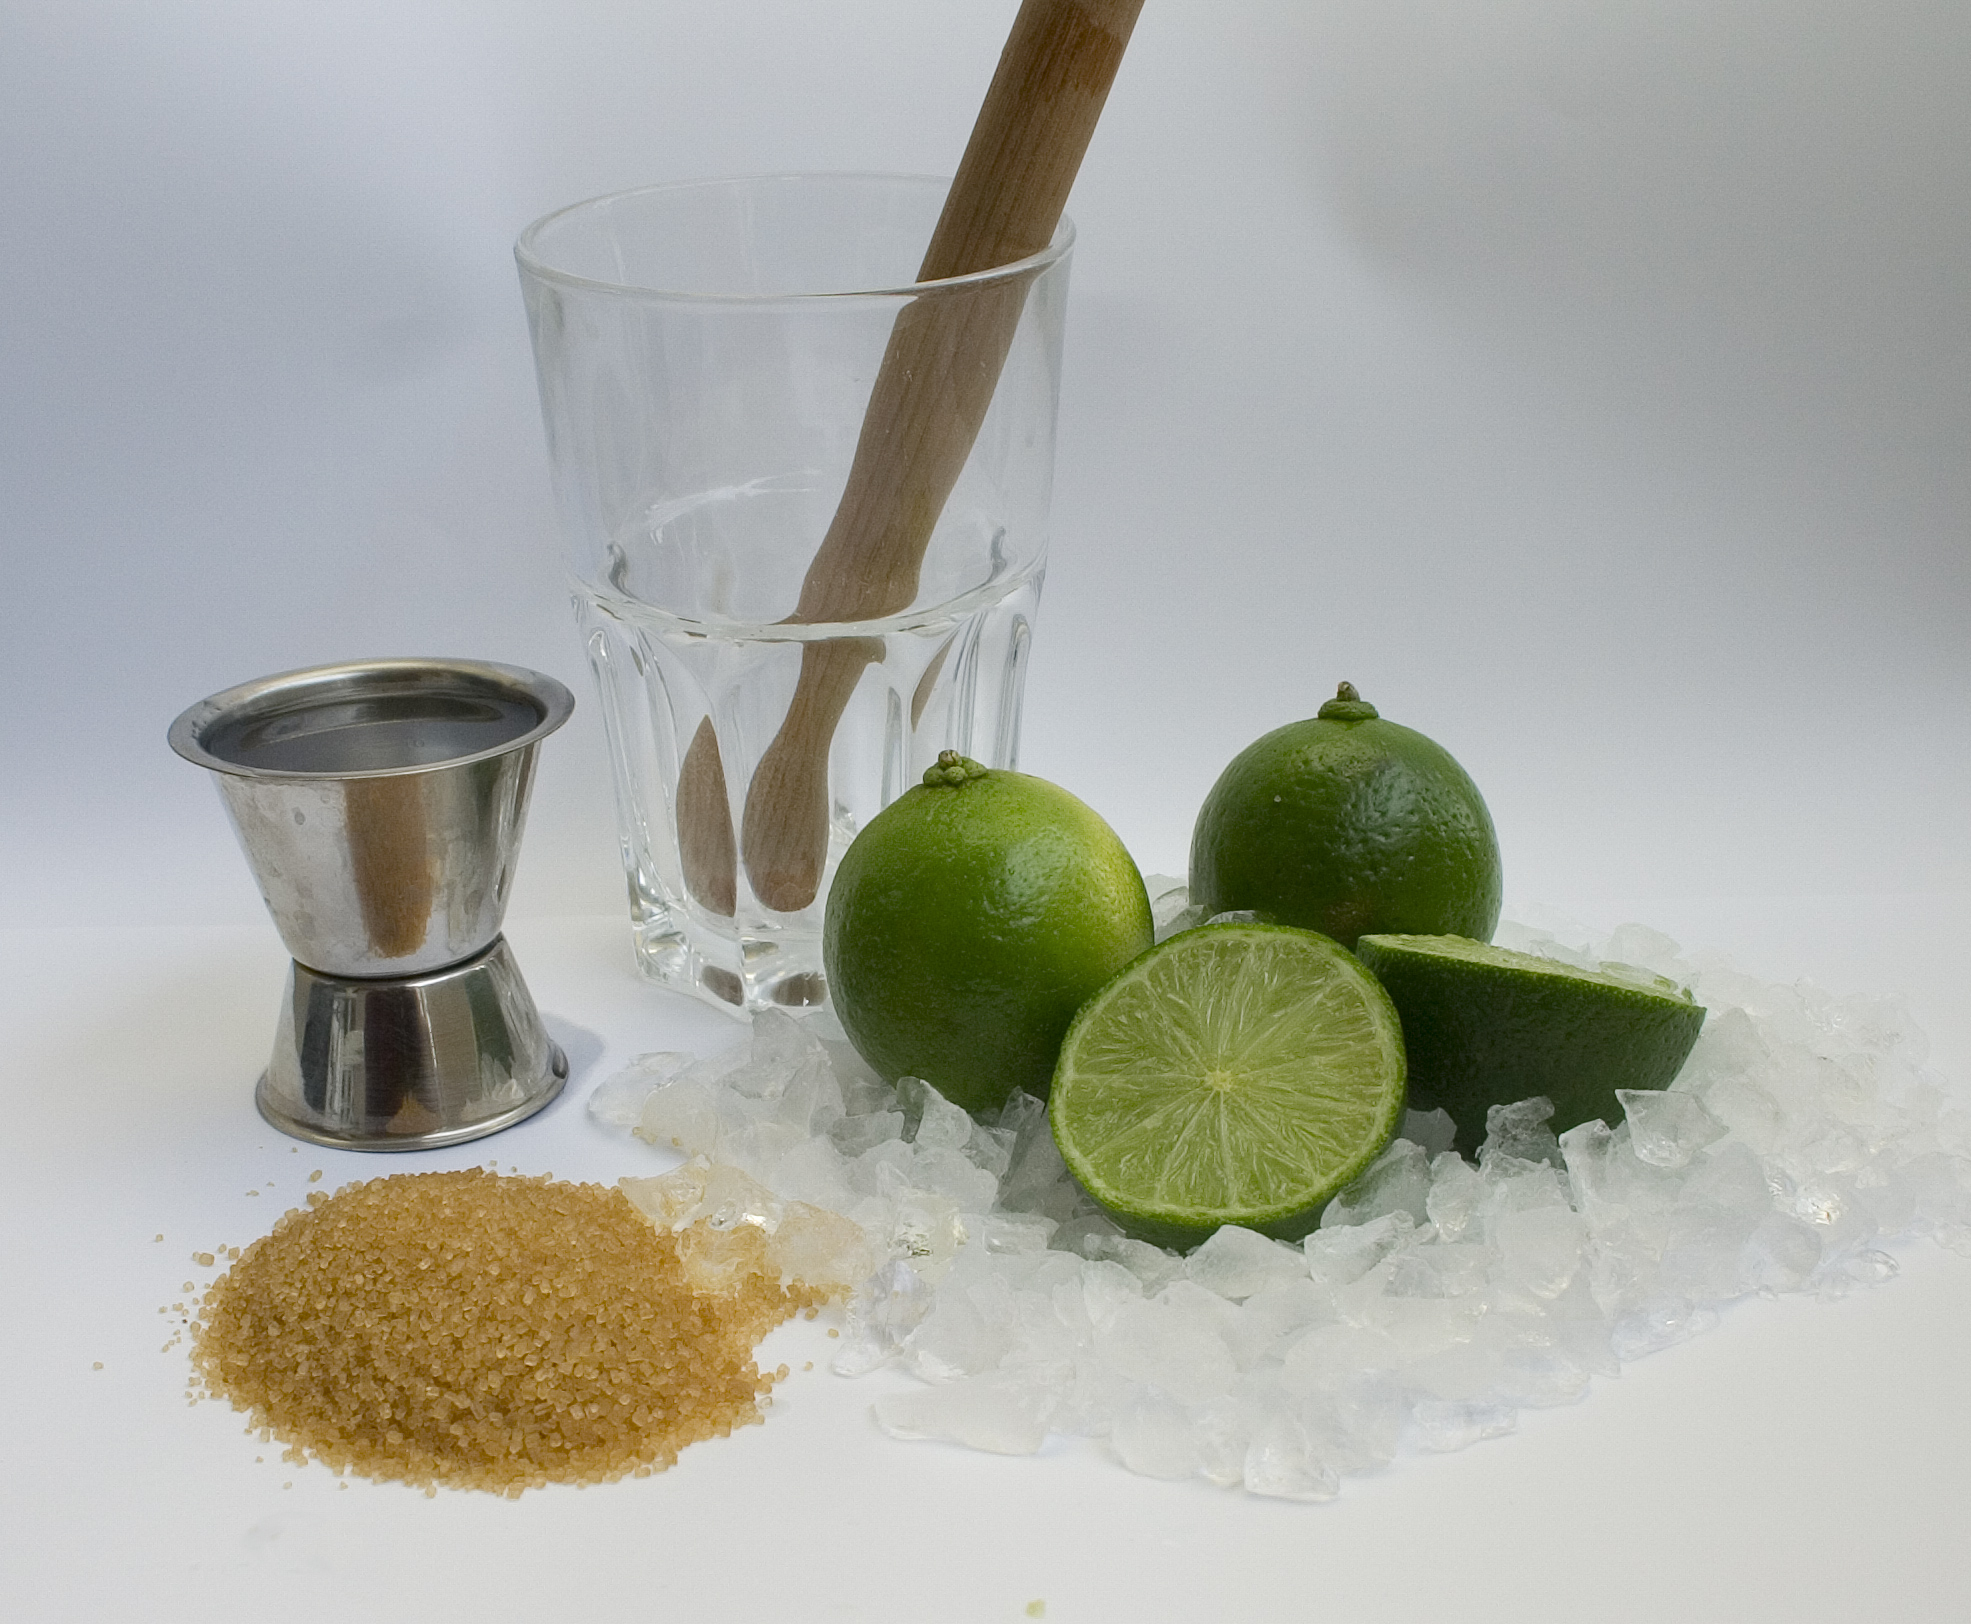 File:Zutaten caipirinha.jpg - Wikipedia, the free encyclopedia